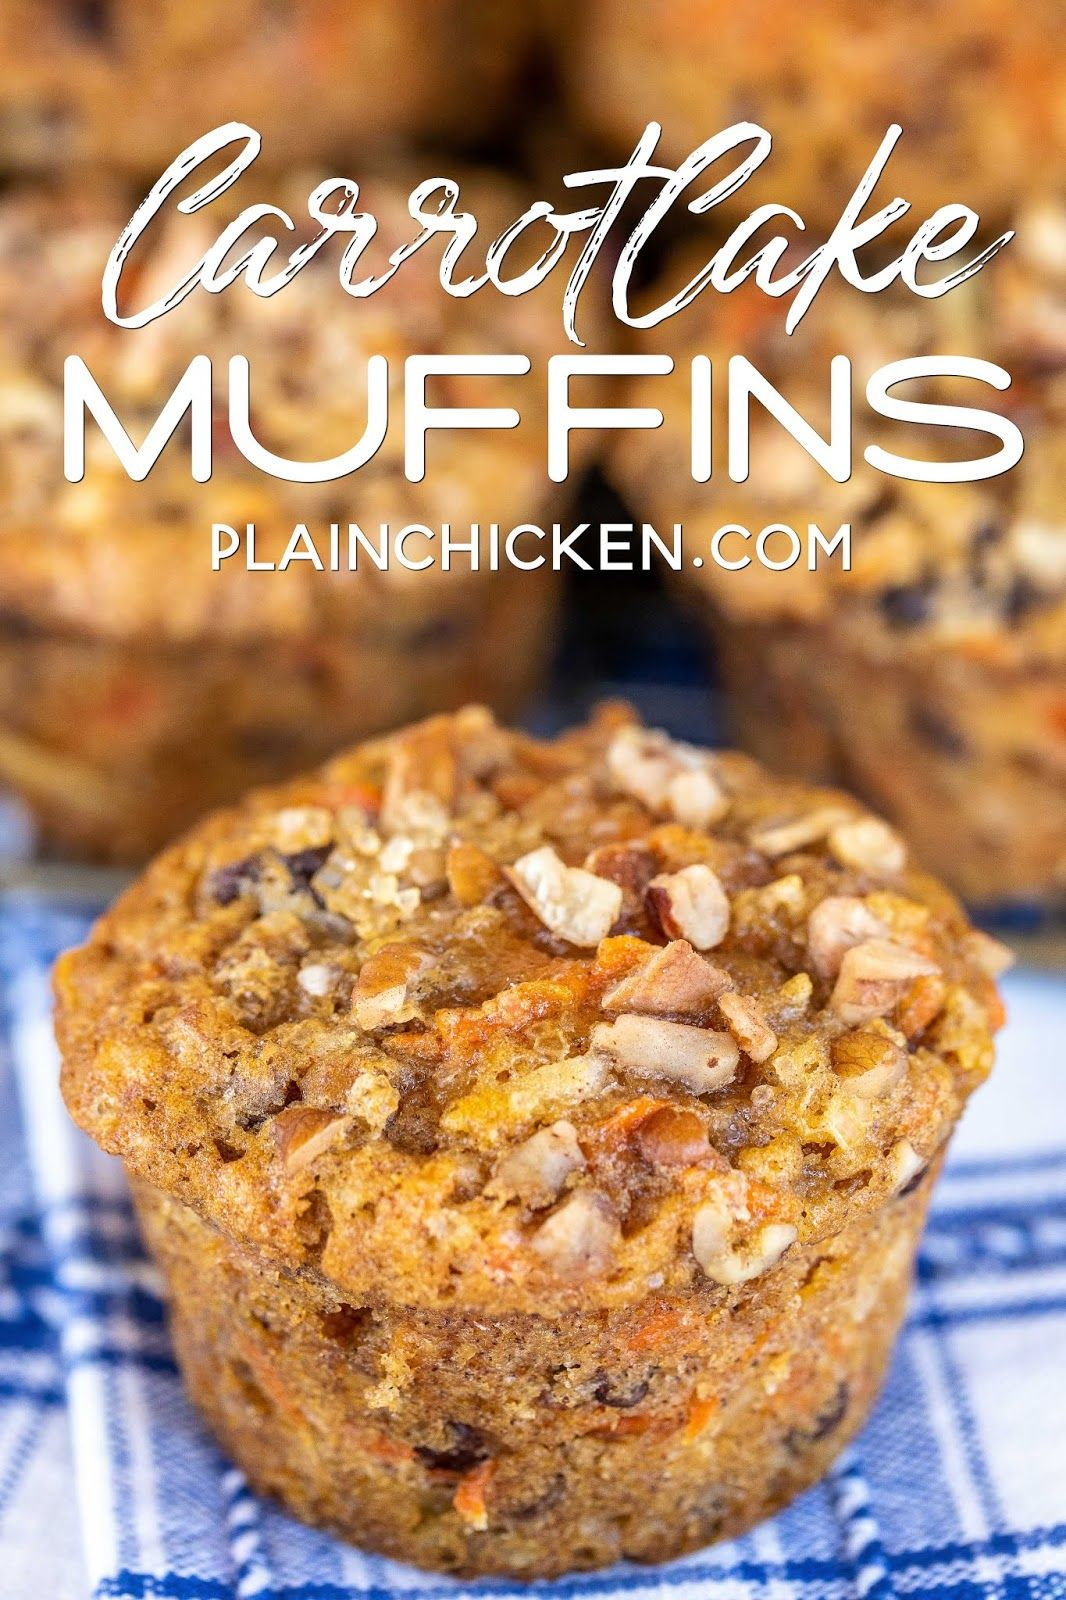 Carrot cake muffins what could be better than cake for